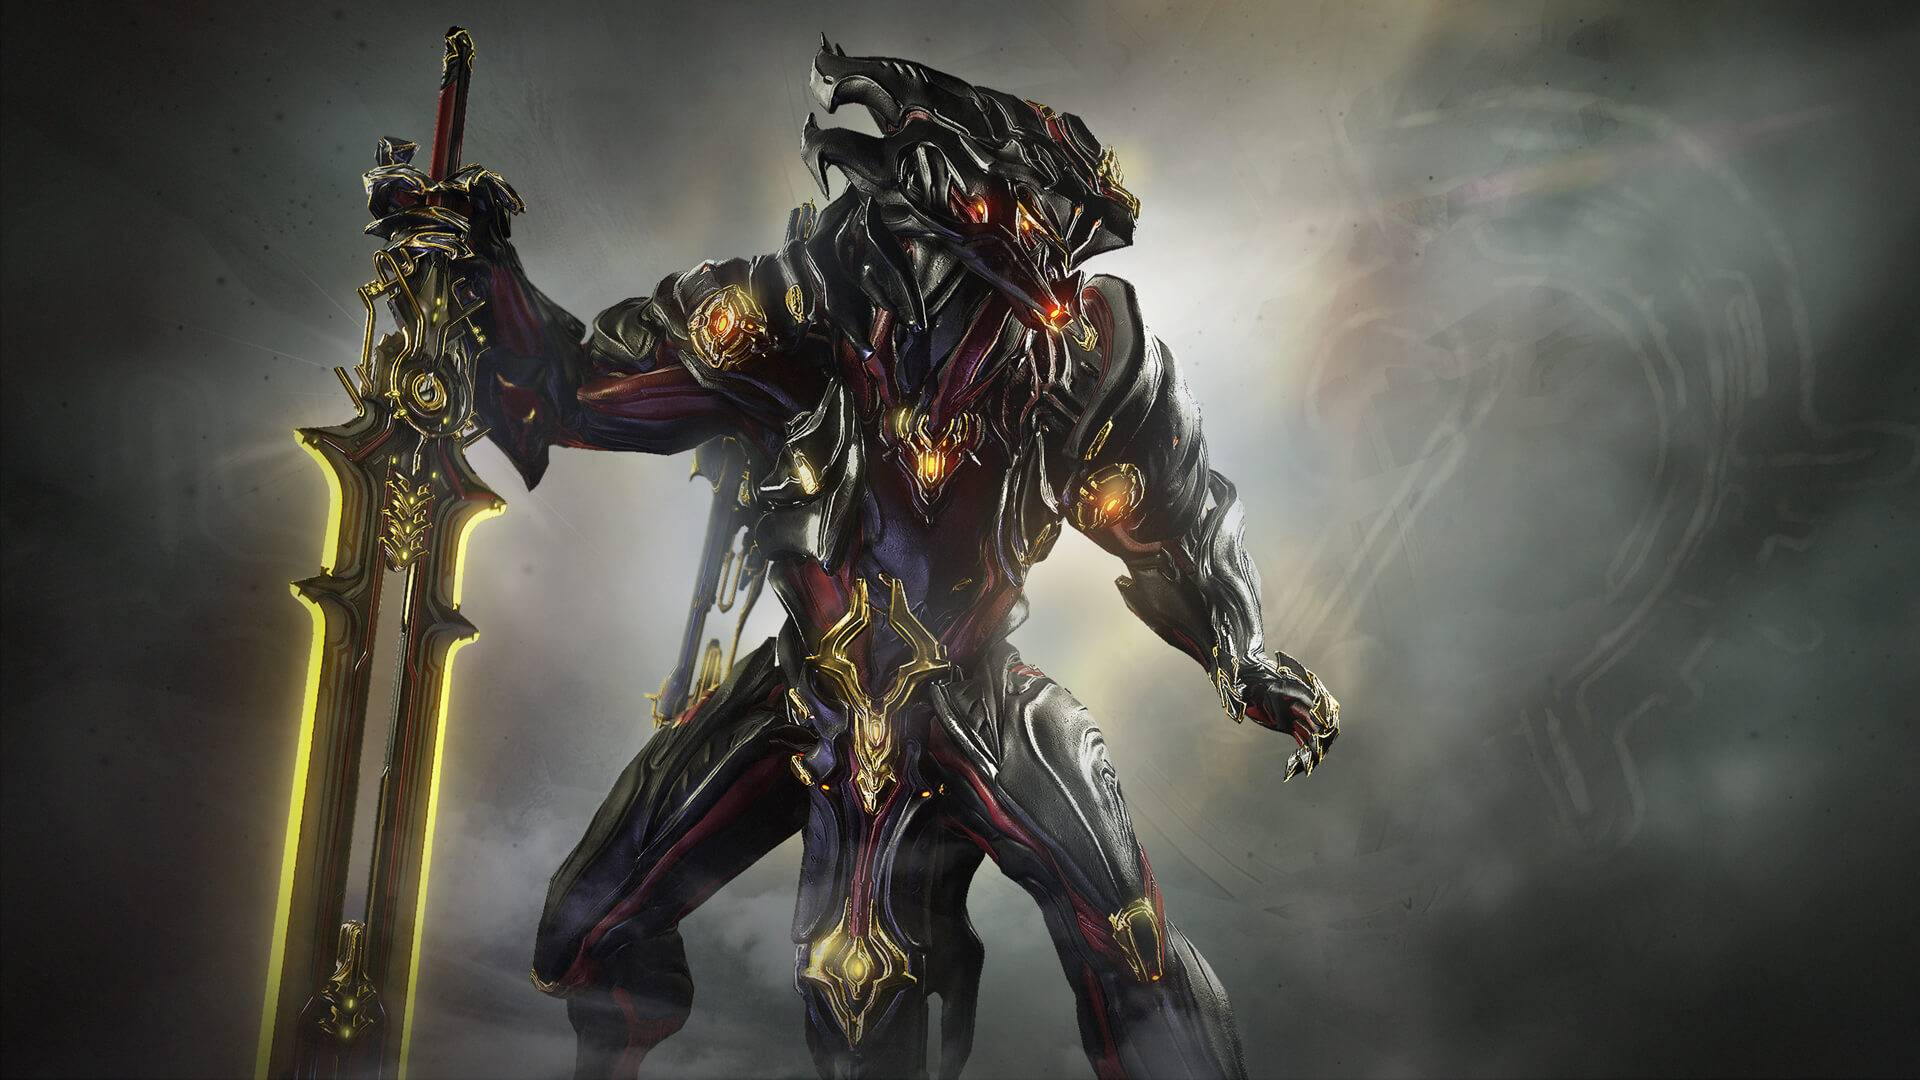 Mask Of The Revenant Chroma Prime 23 9 0 23 9 0 1 Pc Update Notes Warframe Forums In warframe, players are tasked with defeating the grineer, a formidable force who have sent the system into chaos and are boosted by infinite clone armies. mask of the revenant chroma prime 23 9